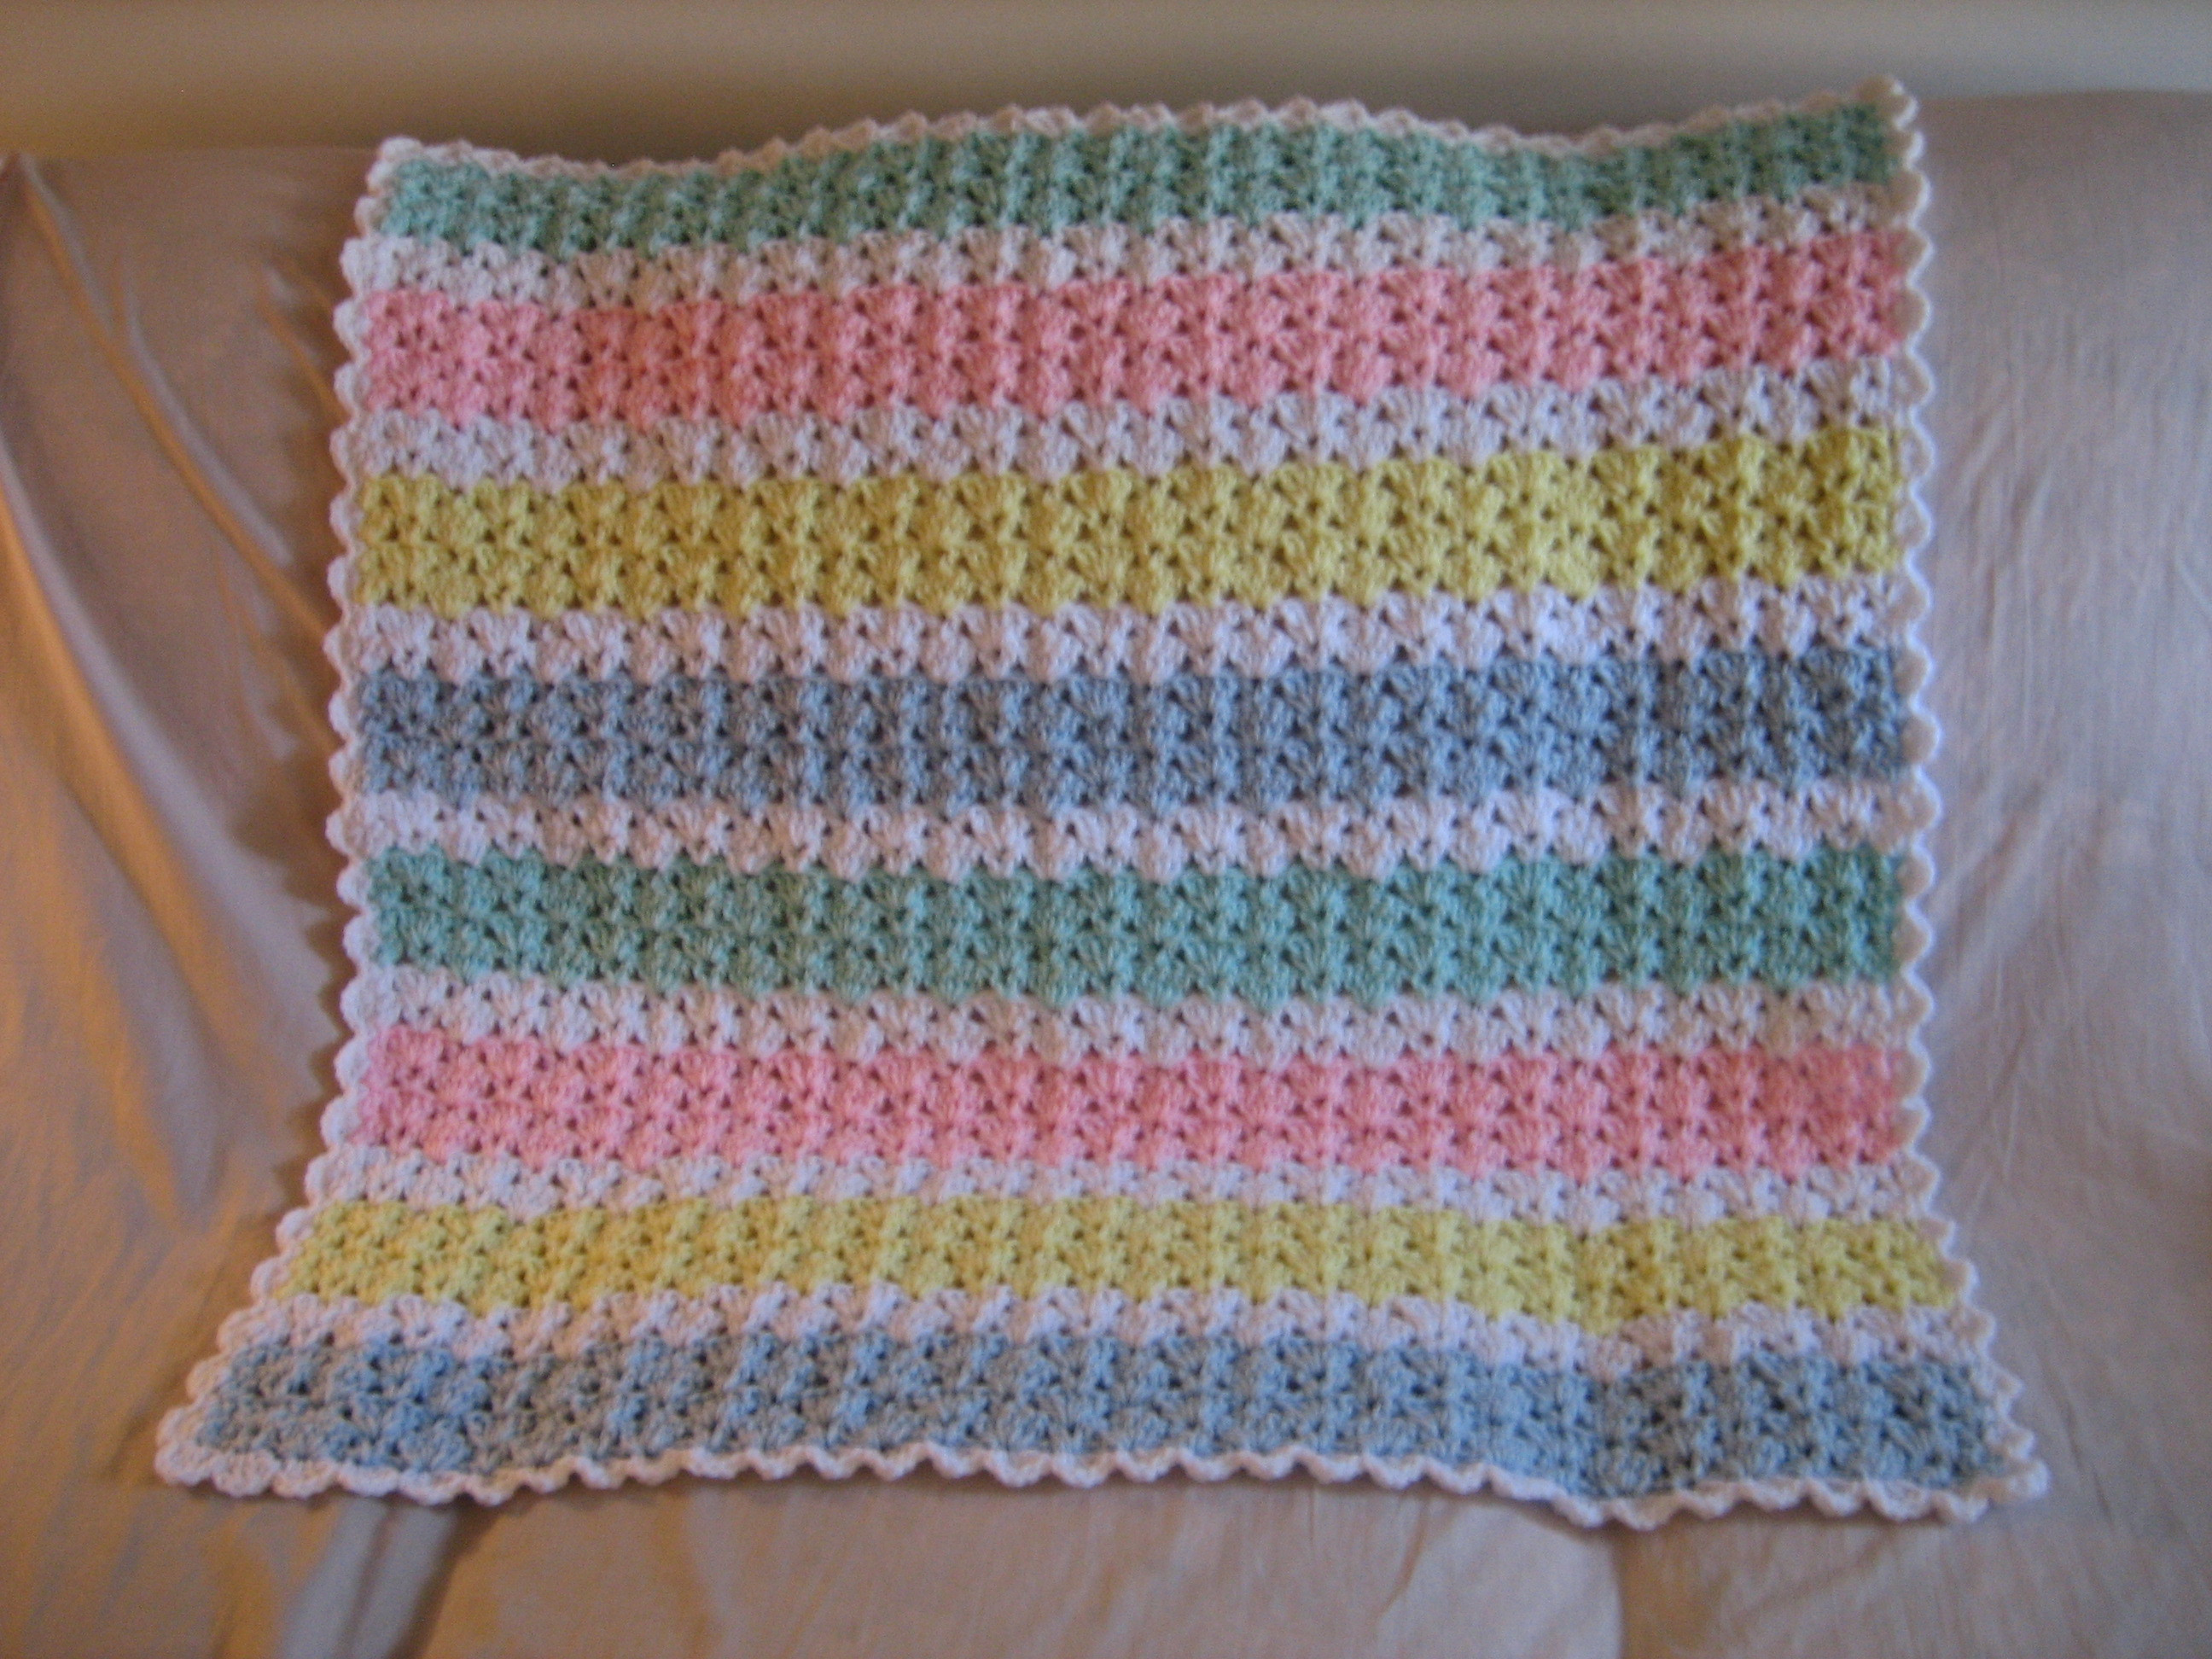 Fresh Crochet Baby Blanket Patterns Free Easy Easy Crochet Stitches for Blankets Of Great 41 Photos Easy Crochet Stitches for Blankets